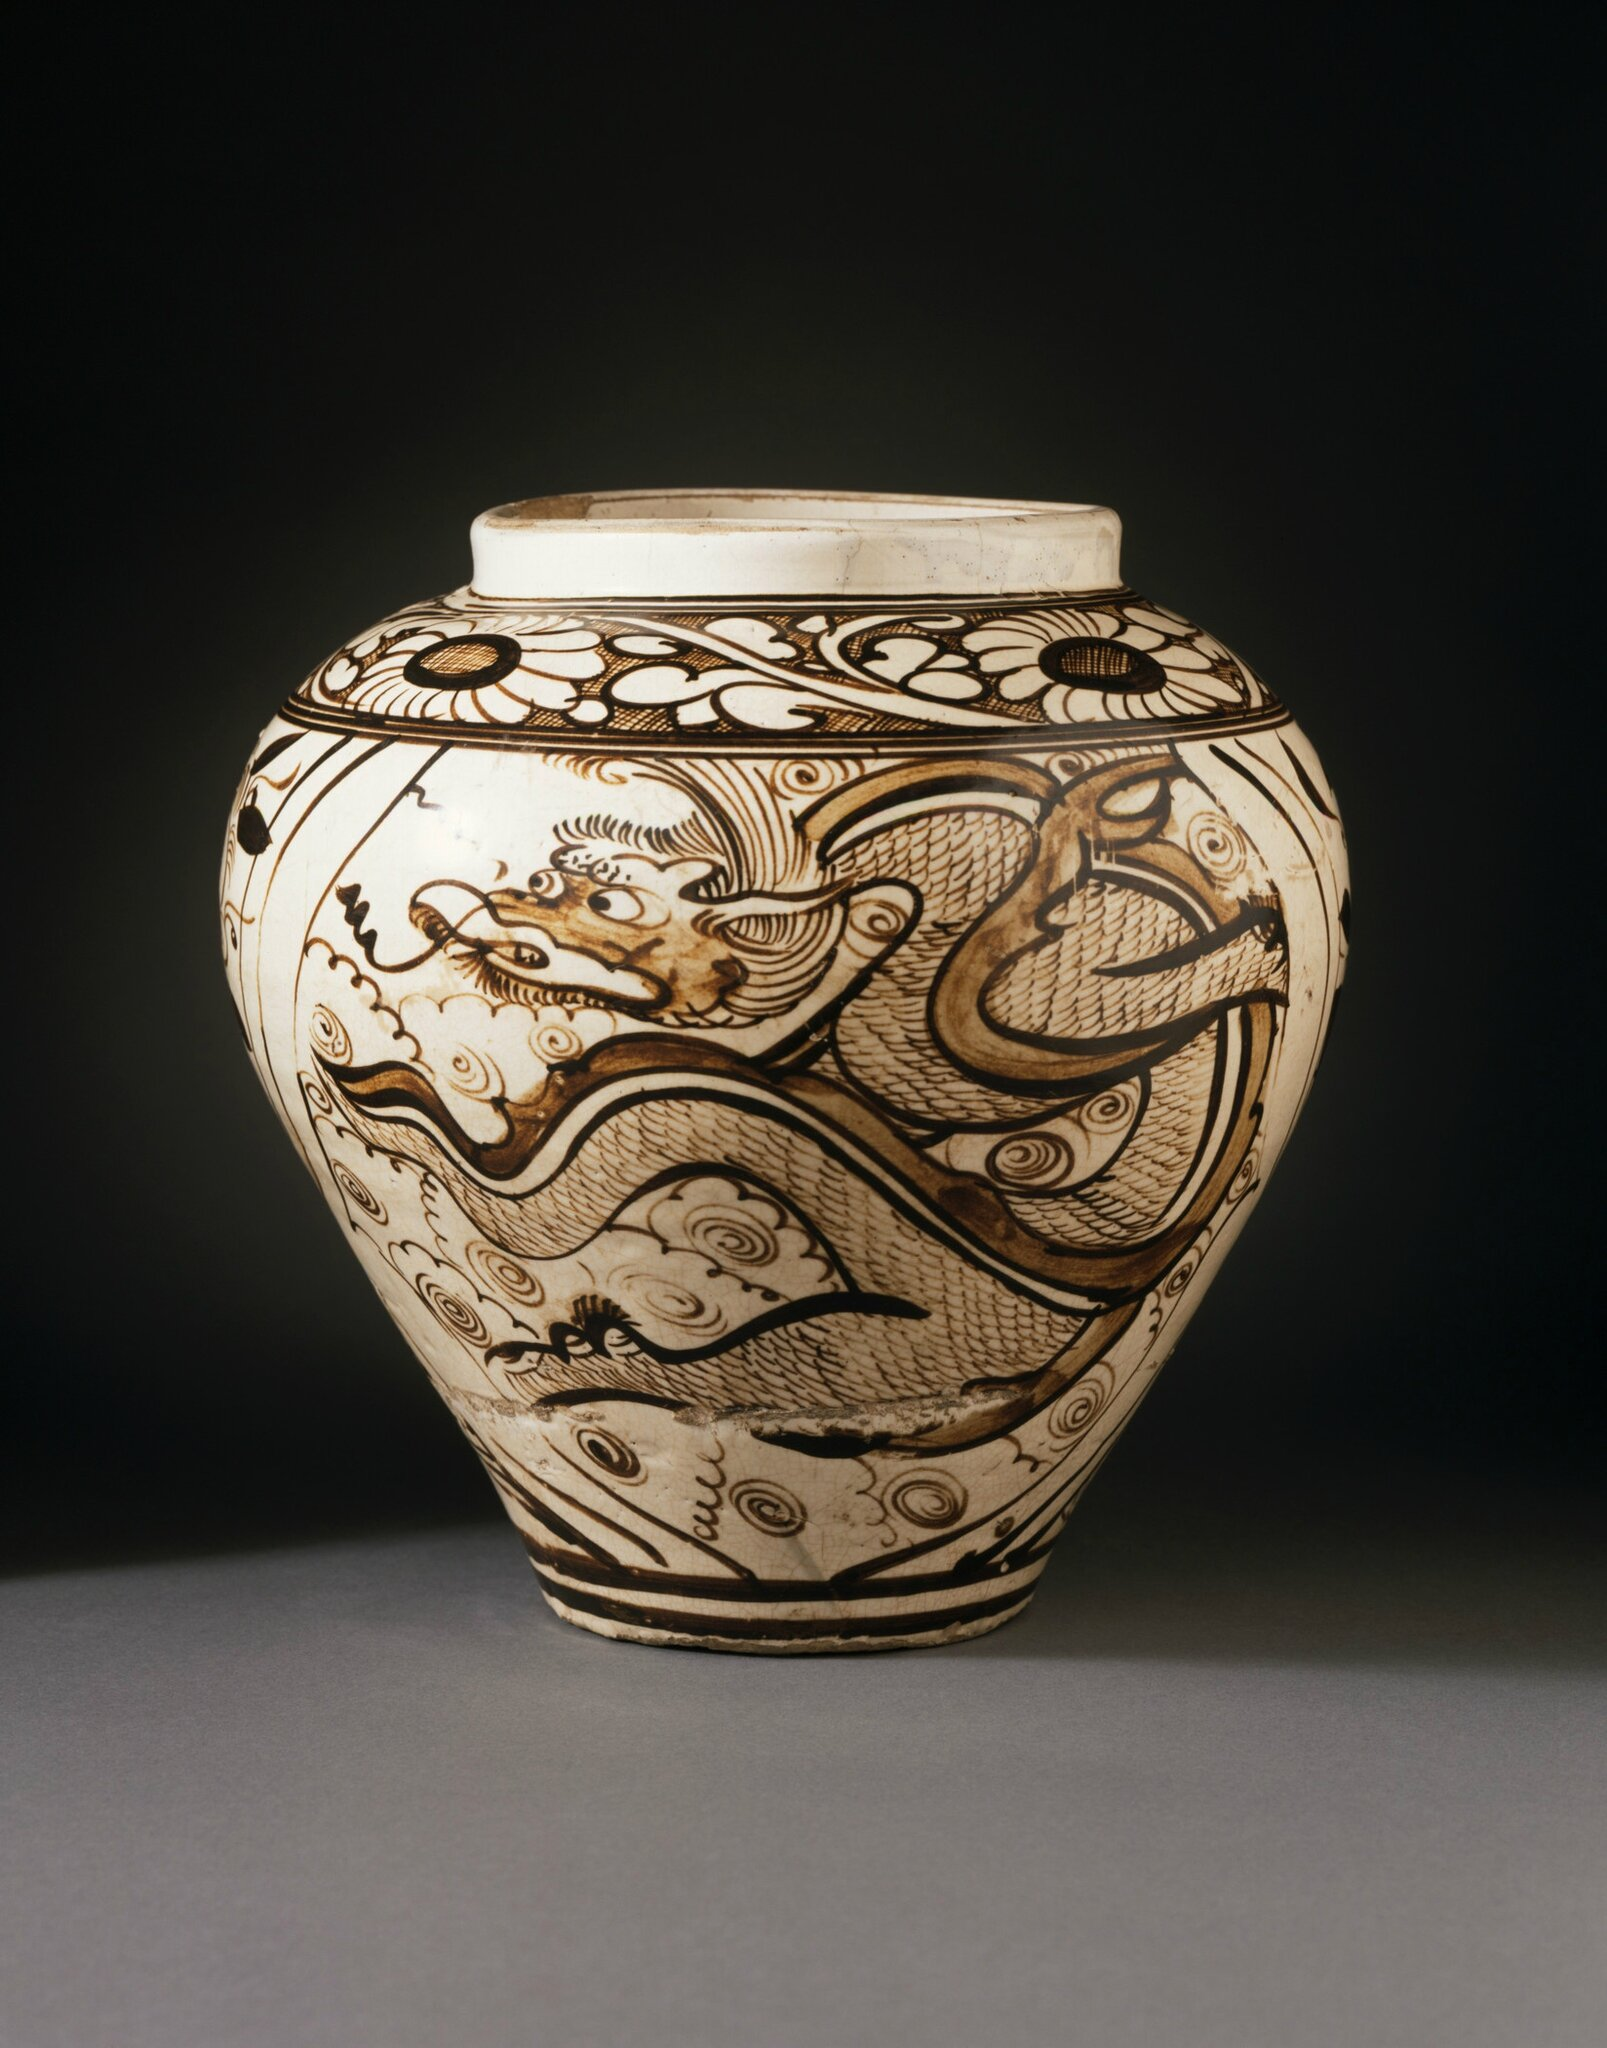 Jar (Ping) with Dragon and Clouds, Yuan dynasty, 1279-1368